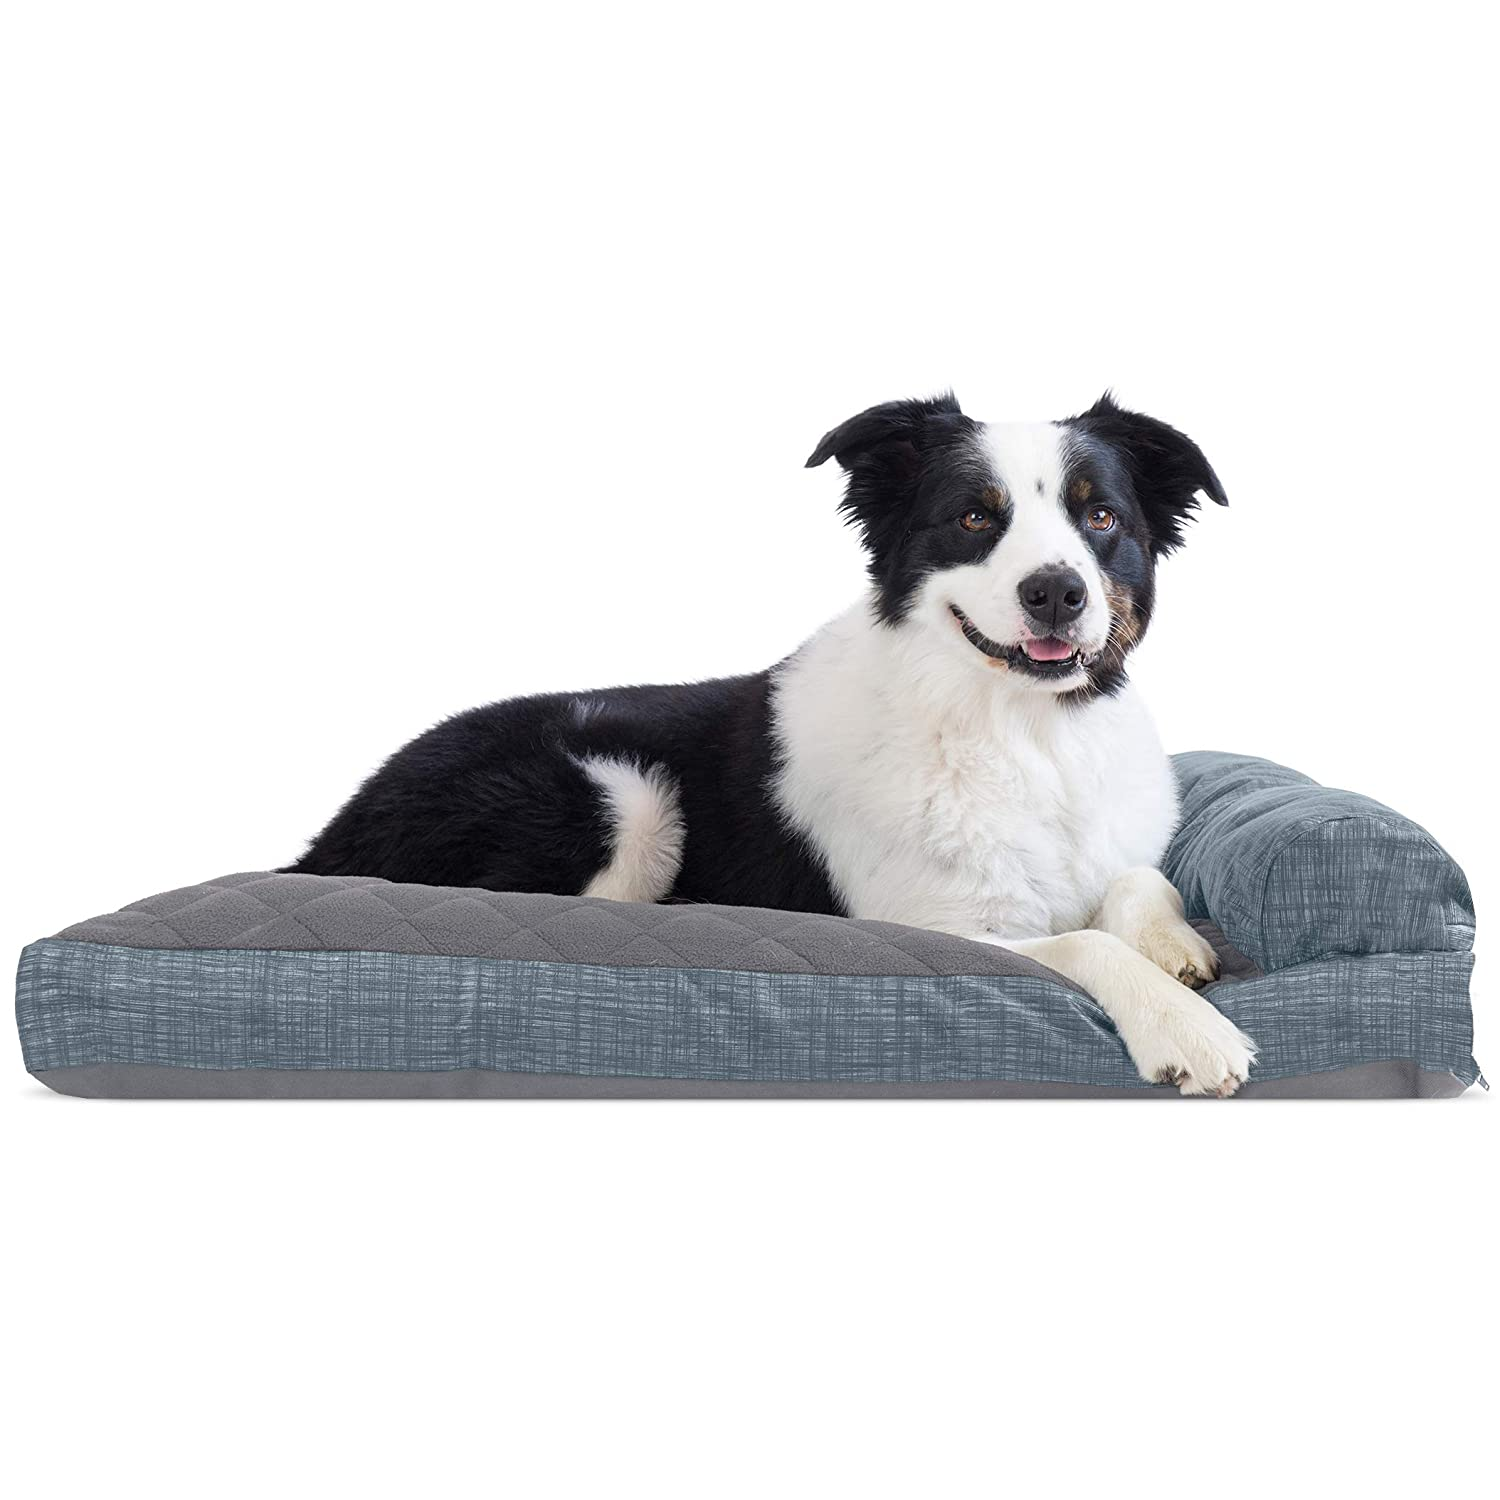 One Sided Titanium L One Sided Titanium L Furhaven Pet Dog Bed   Quilted Fleece & Print Suede Chaise Lounge Pillow Sofa-Style Pet Bed for Dogs & Cats, Titanium, Large